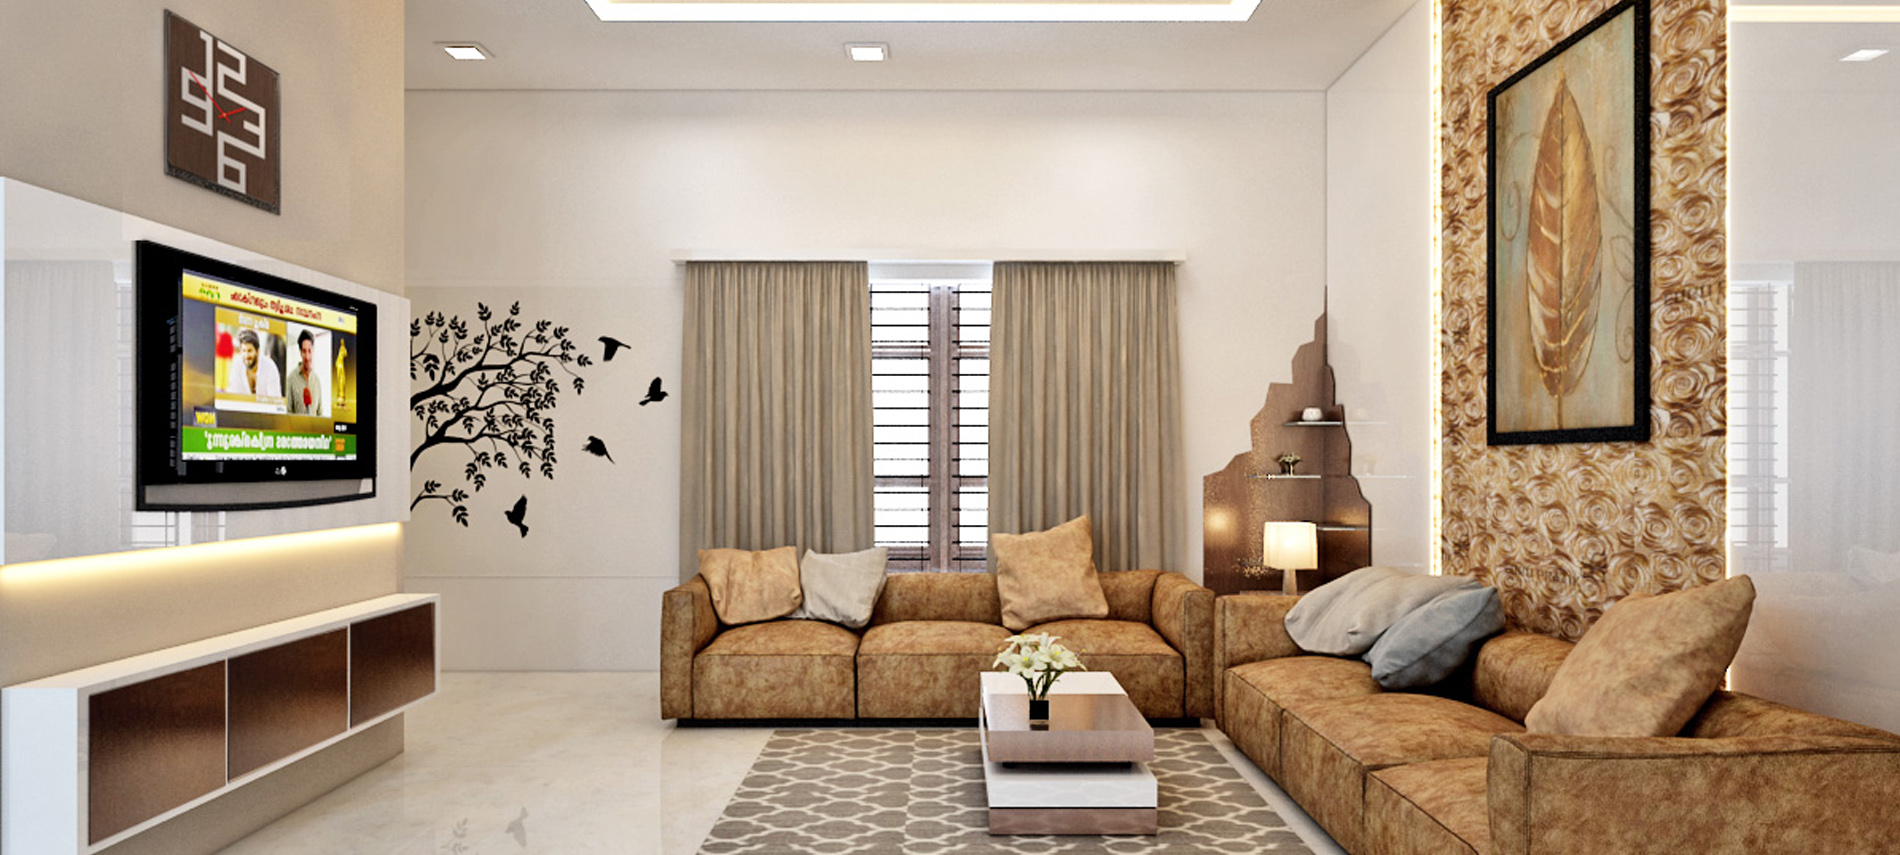 Interior Designers In Trivandrum For Homes Offices Gazella